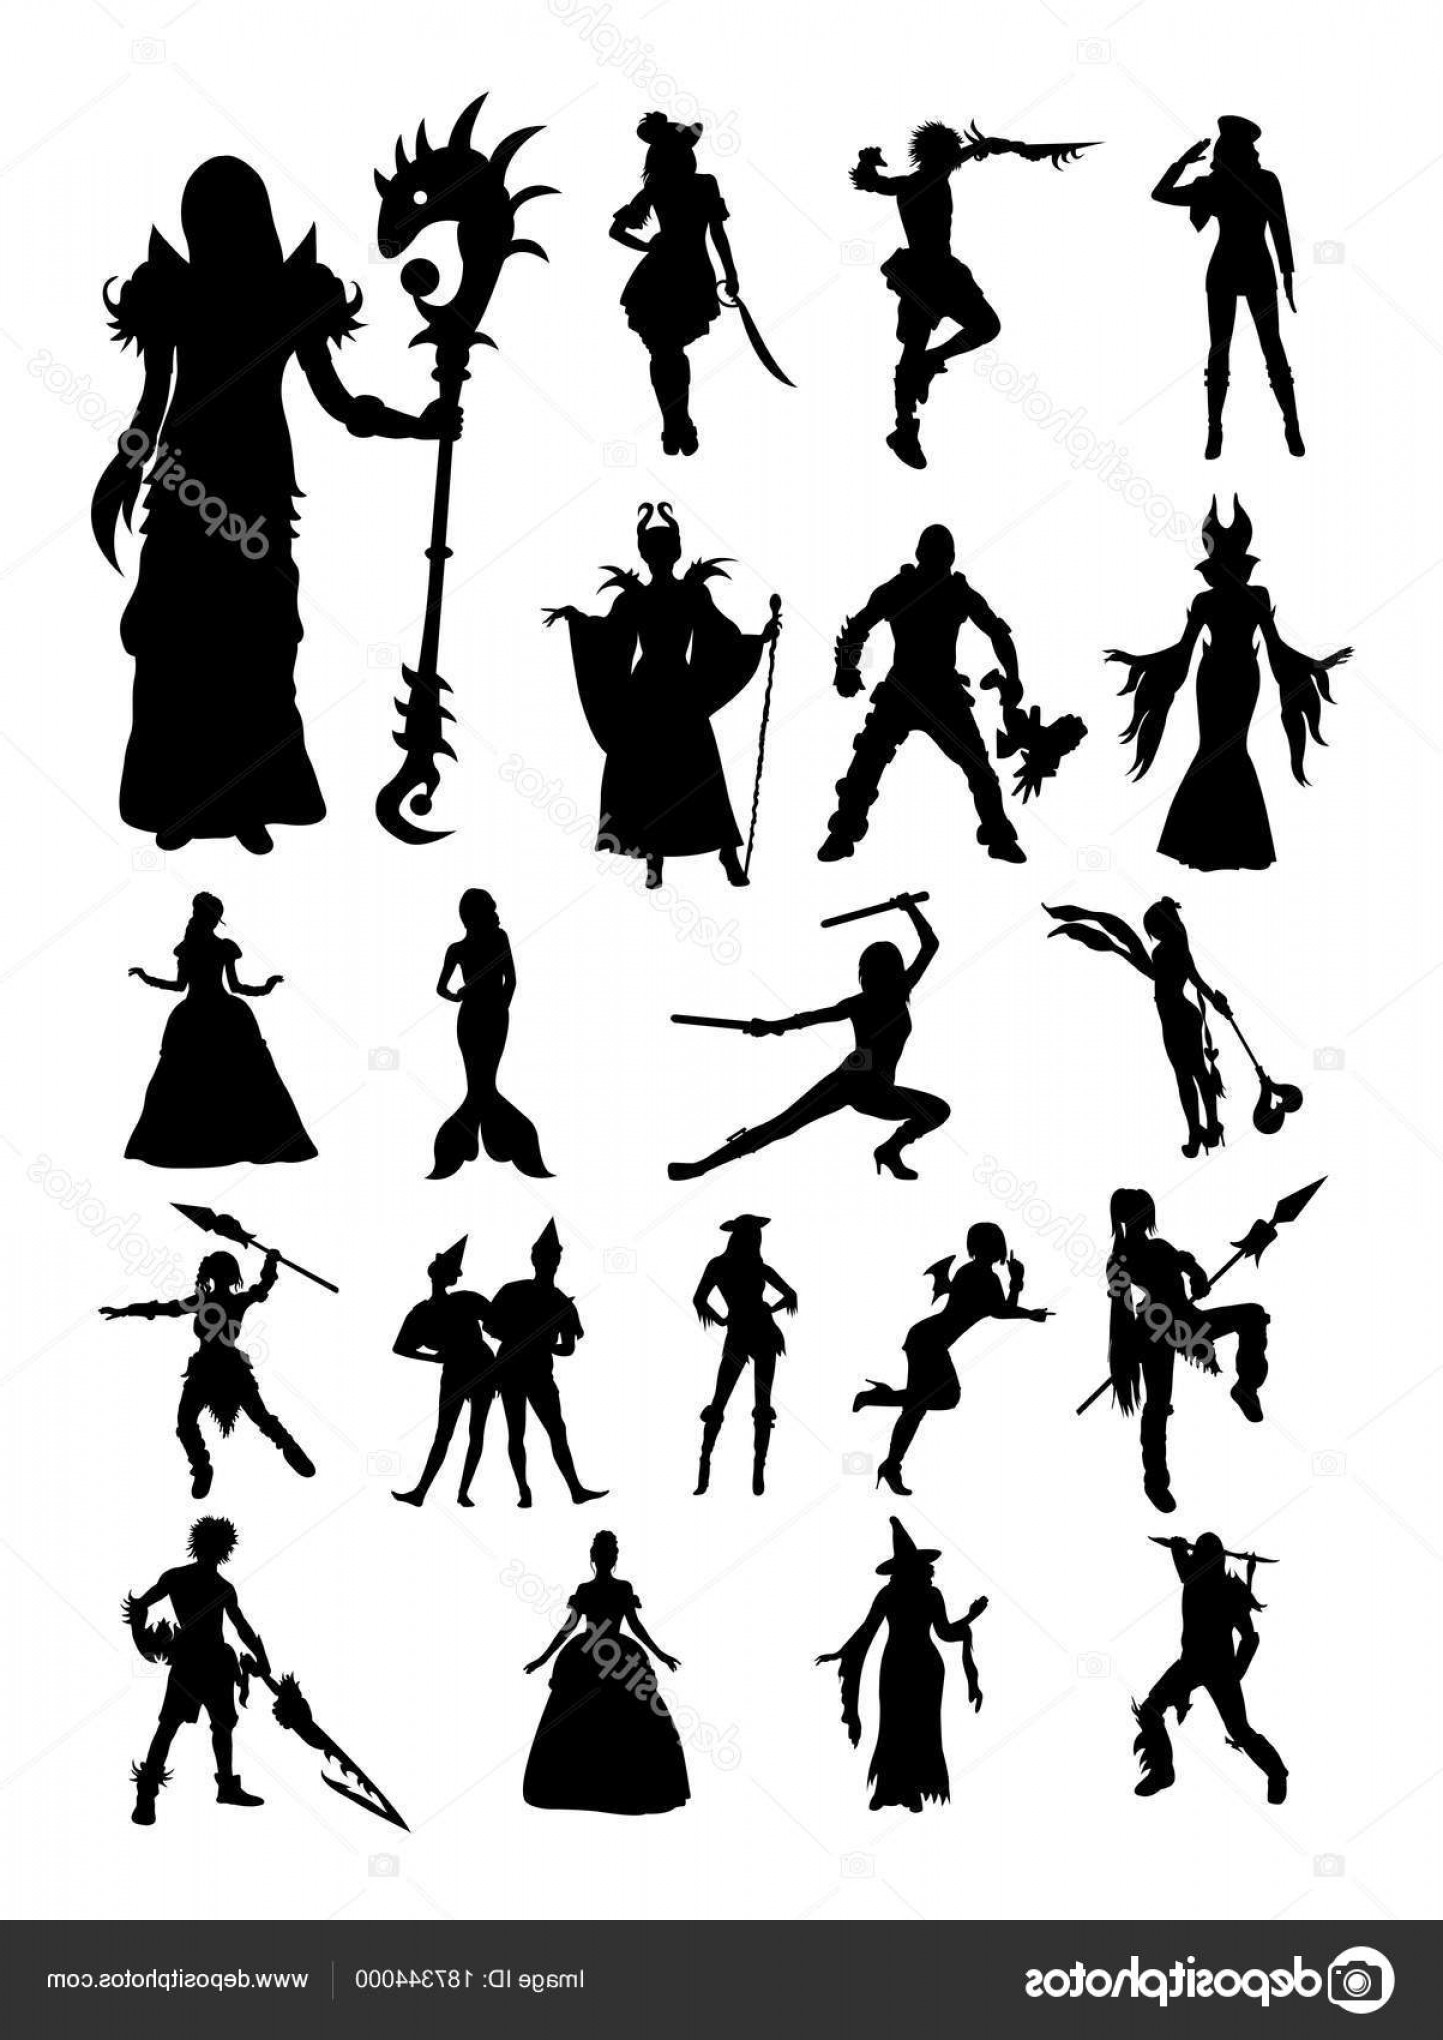 Vector Cosplay: Stock Illustration Cosplay Detail Silhouette Vector Illustration